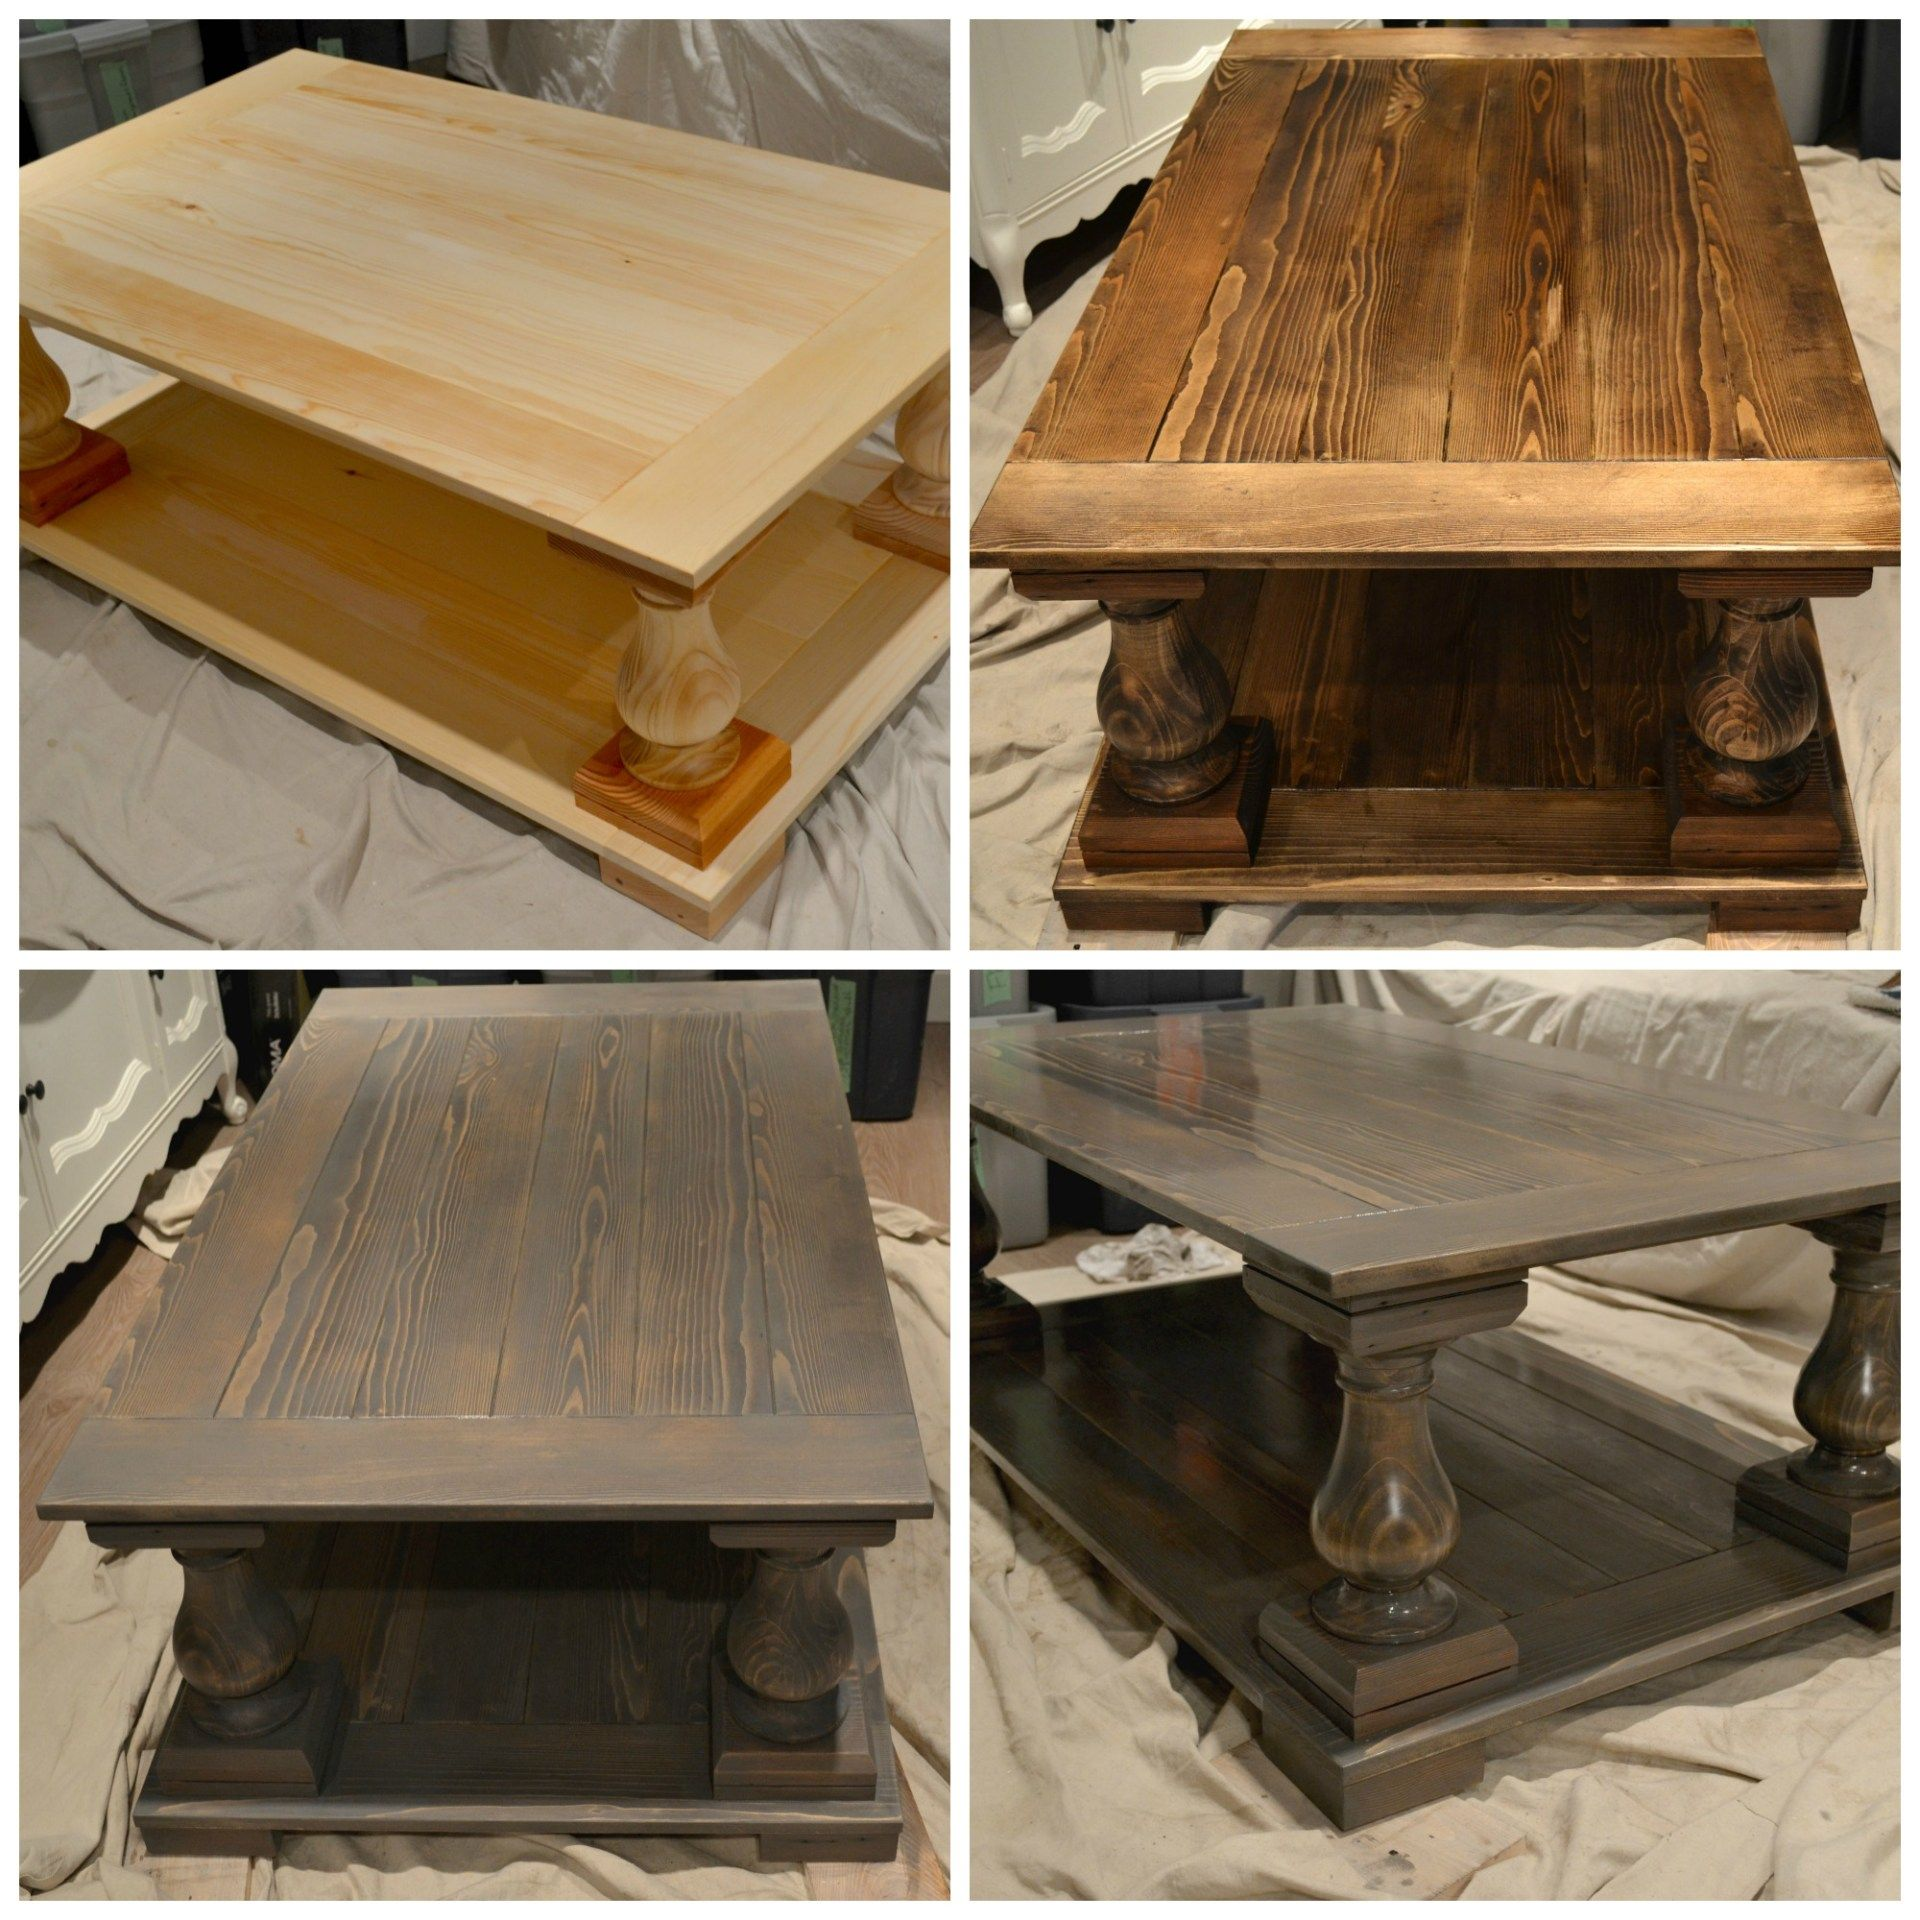 Restoration Hardware Reclaimed Teak Coffee Table: I Fell In Love With The Restoration Hardware Balustrade